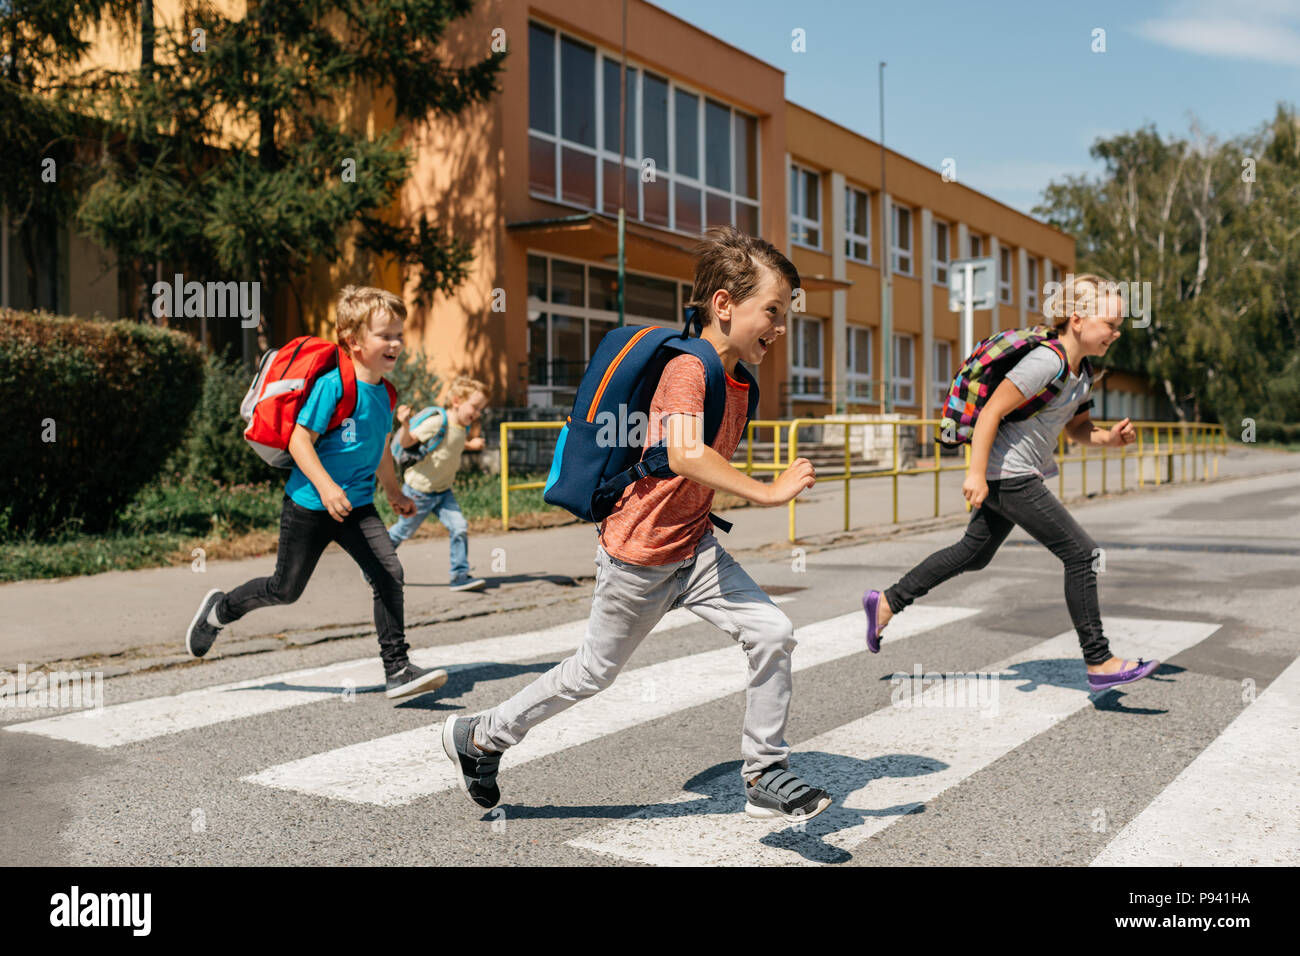 Group of laughing classmates rushing out of school crossing road. Happy children running across a road at a pedestrian crossing. - Stock Image